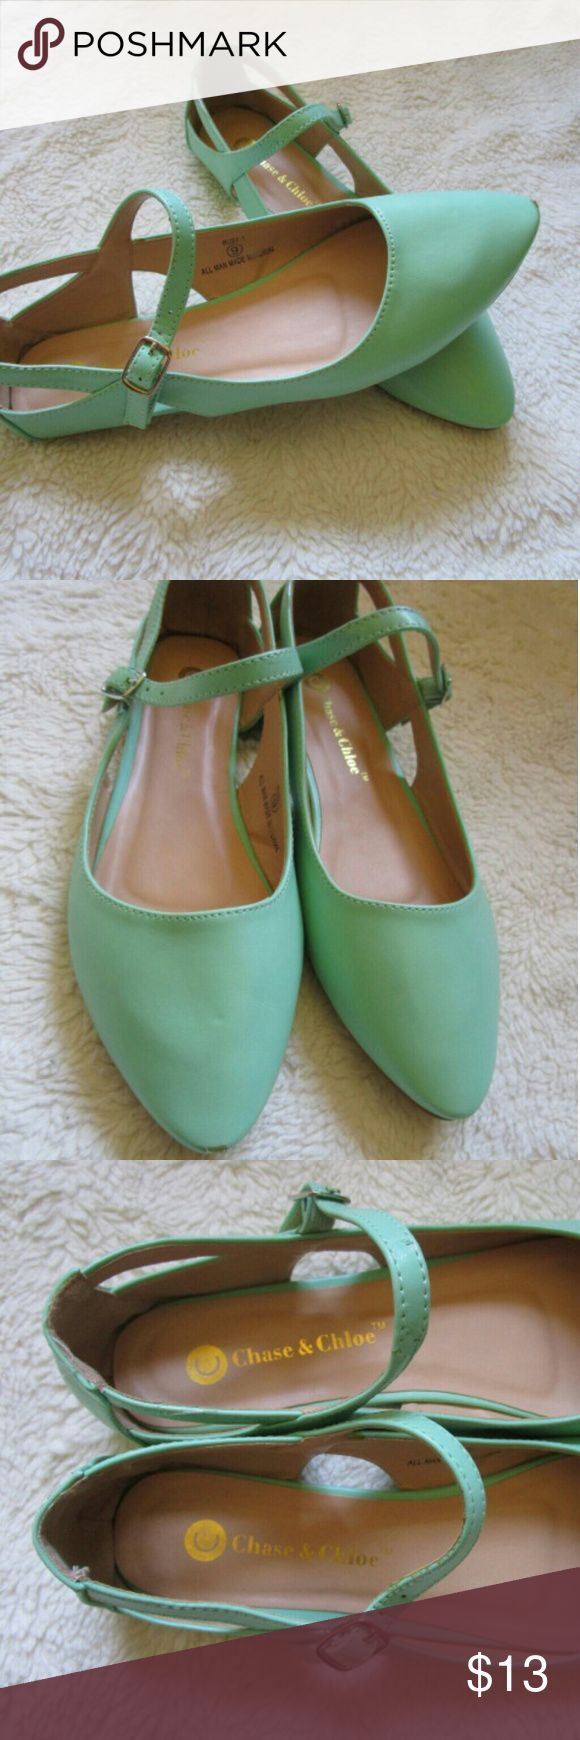 Modcloth Many Modes of Mint Mary Jane Flats These gorgeous flats are from Modcloth! They are Chase& Chloe brand which is also sold at stores like Nordstrom.    These flats are in excellent used condition! There are virtually no signs of wear. Small chip at the tip of one shoe, but otherwise these are lovely!  Size 9  Fits true to size ModCloth Shoes Flats & Loafers